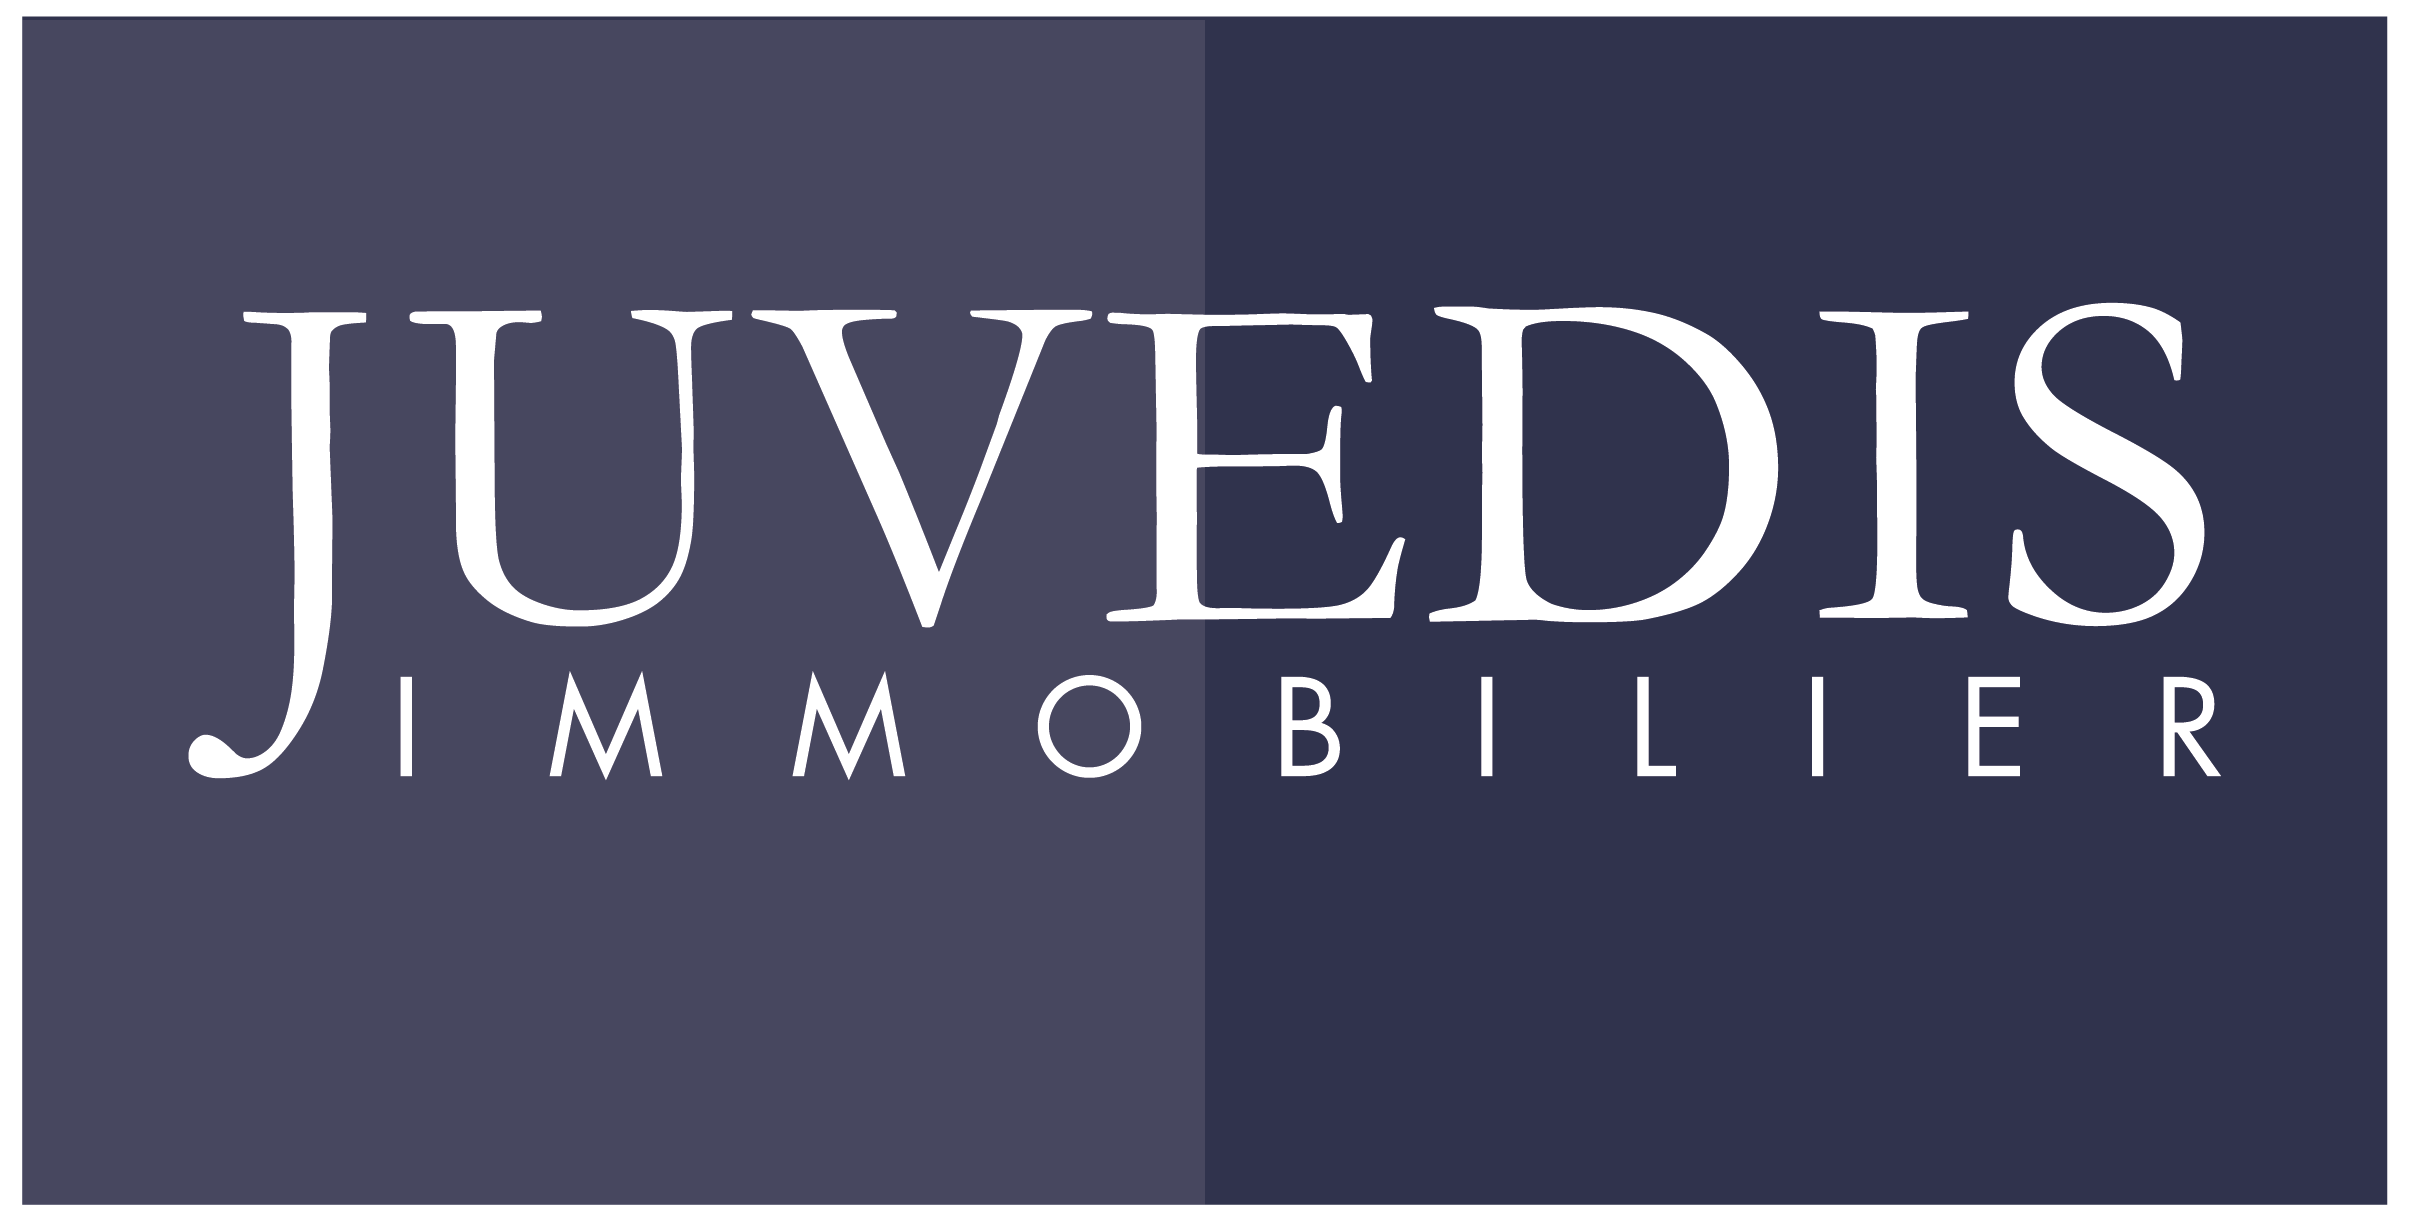 JUVEDIS Immobilier